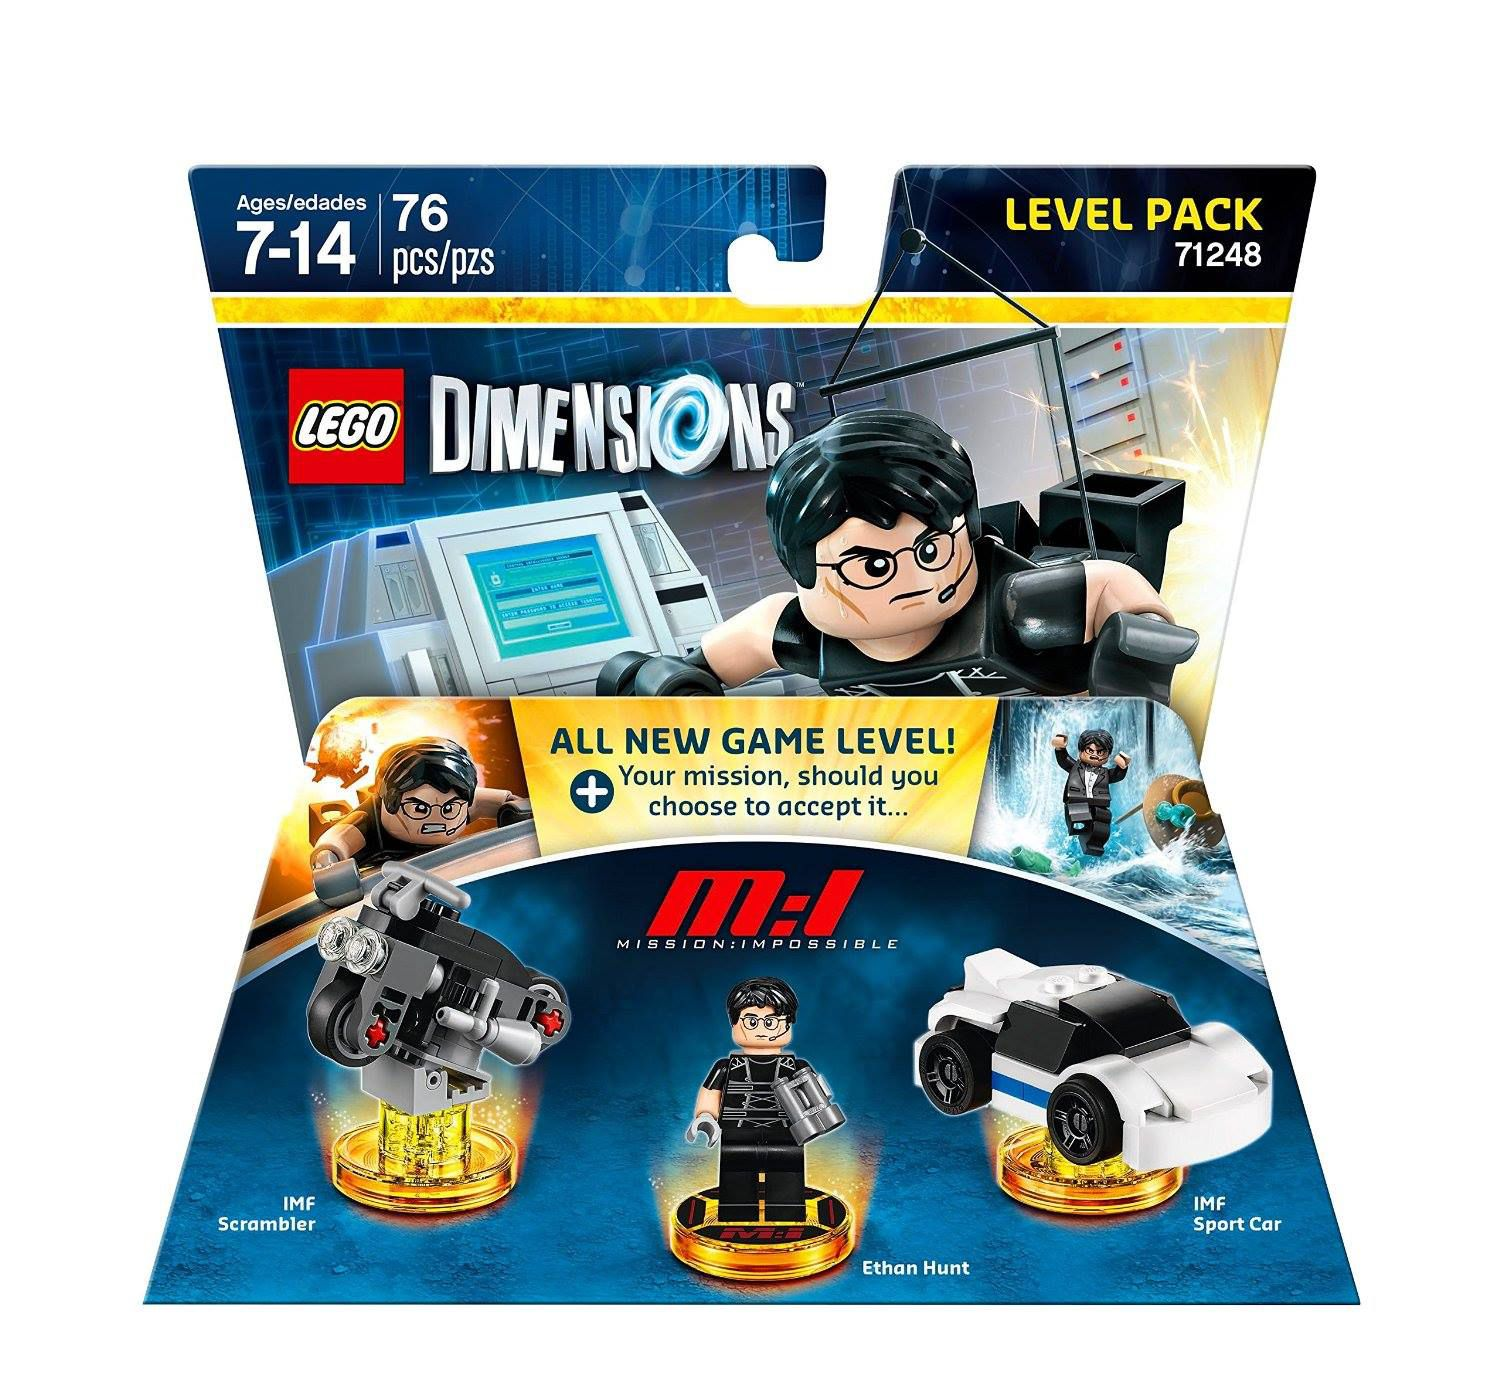 LEGO Dimensions 71248 Level Pack Mission Impossible LEGO_DIMENSIONS_71248_Mission-Impossible-03.jpg